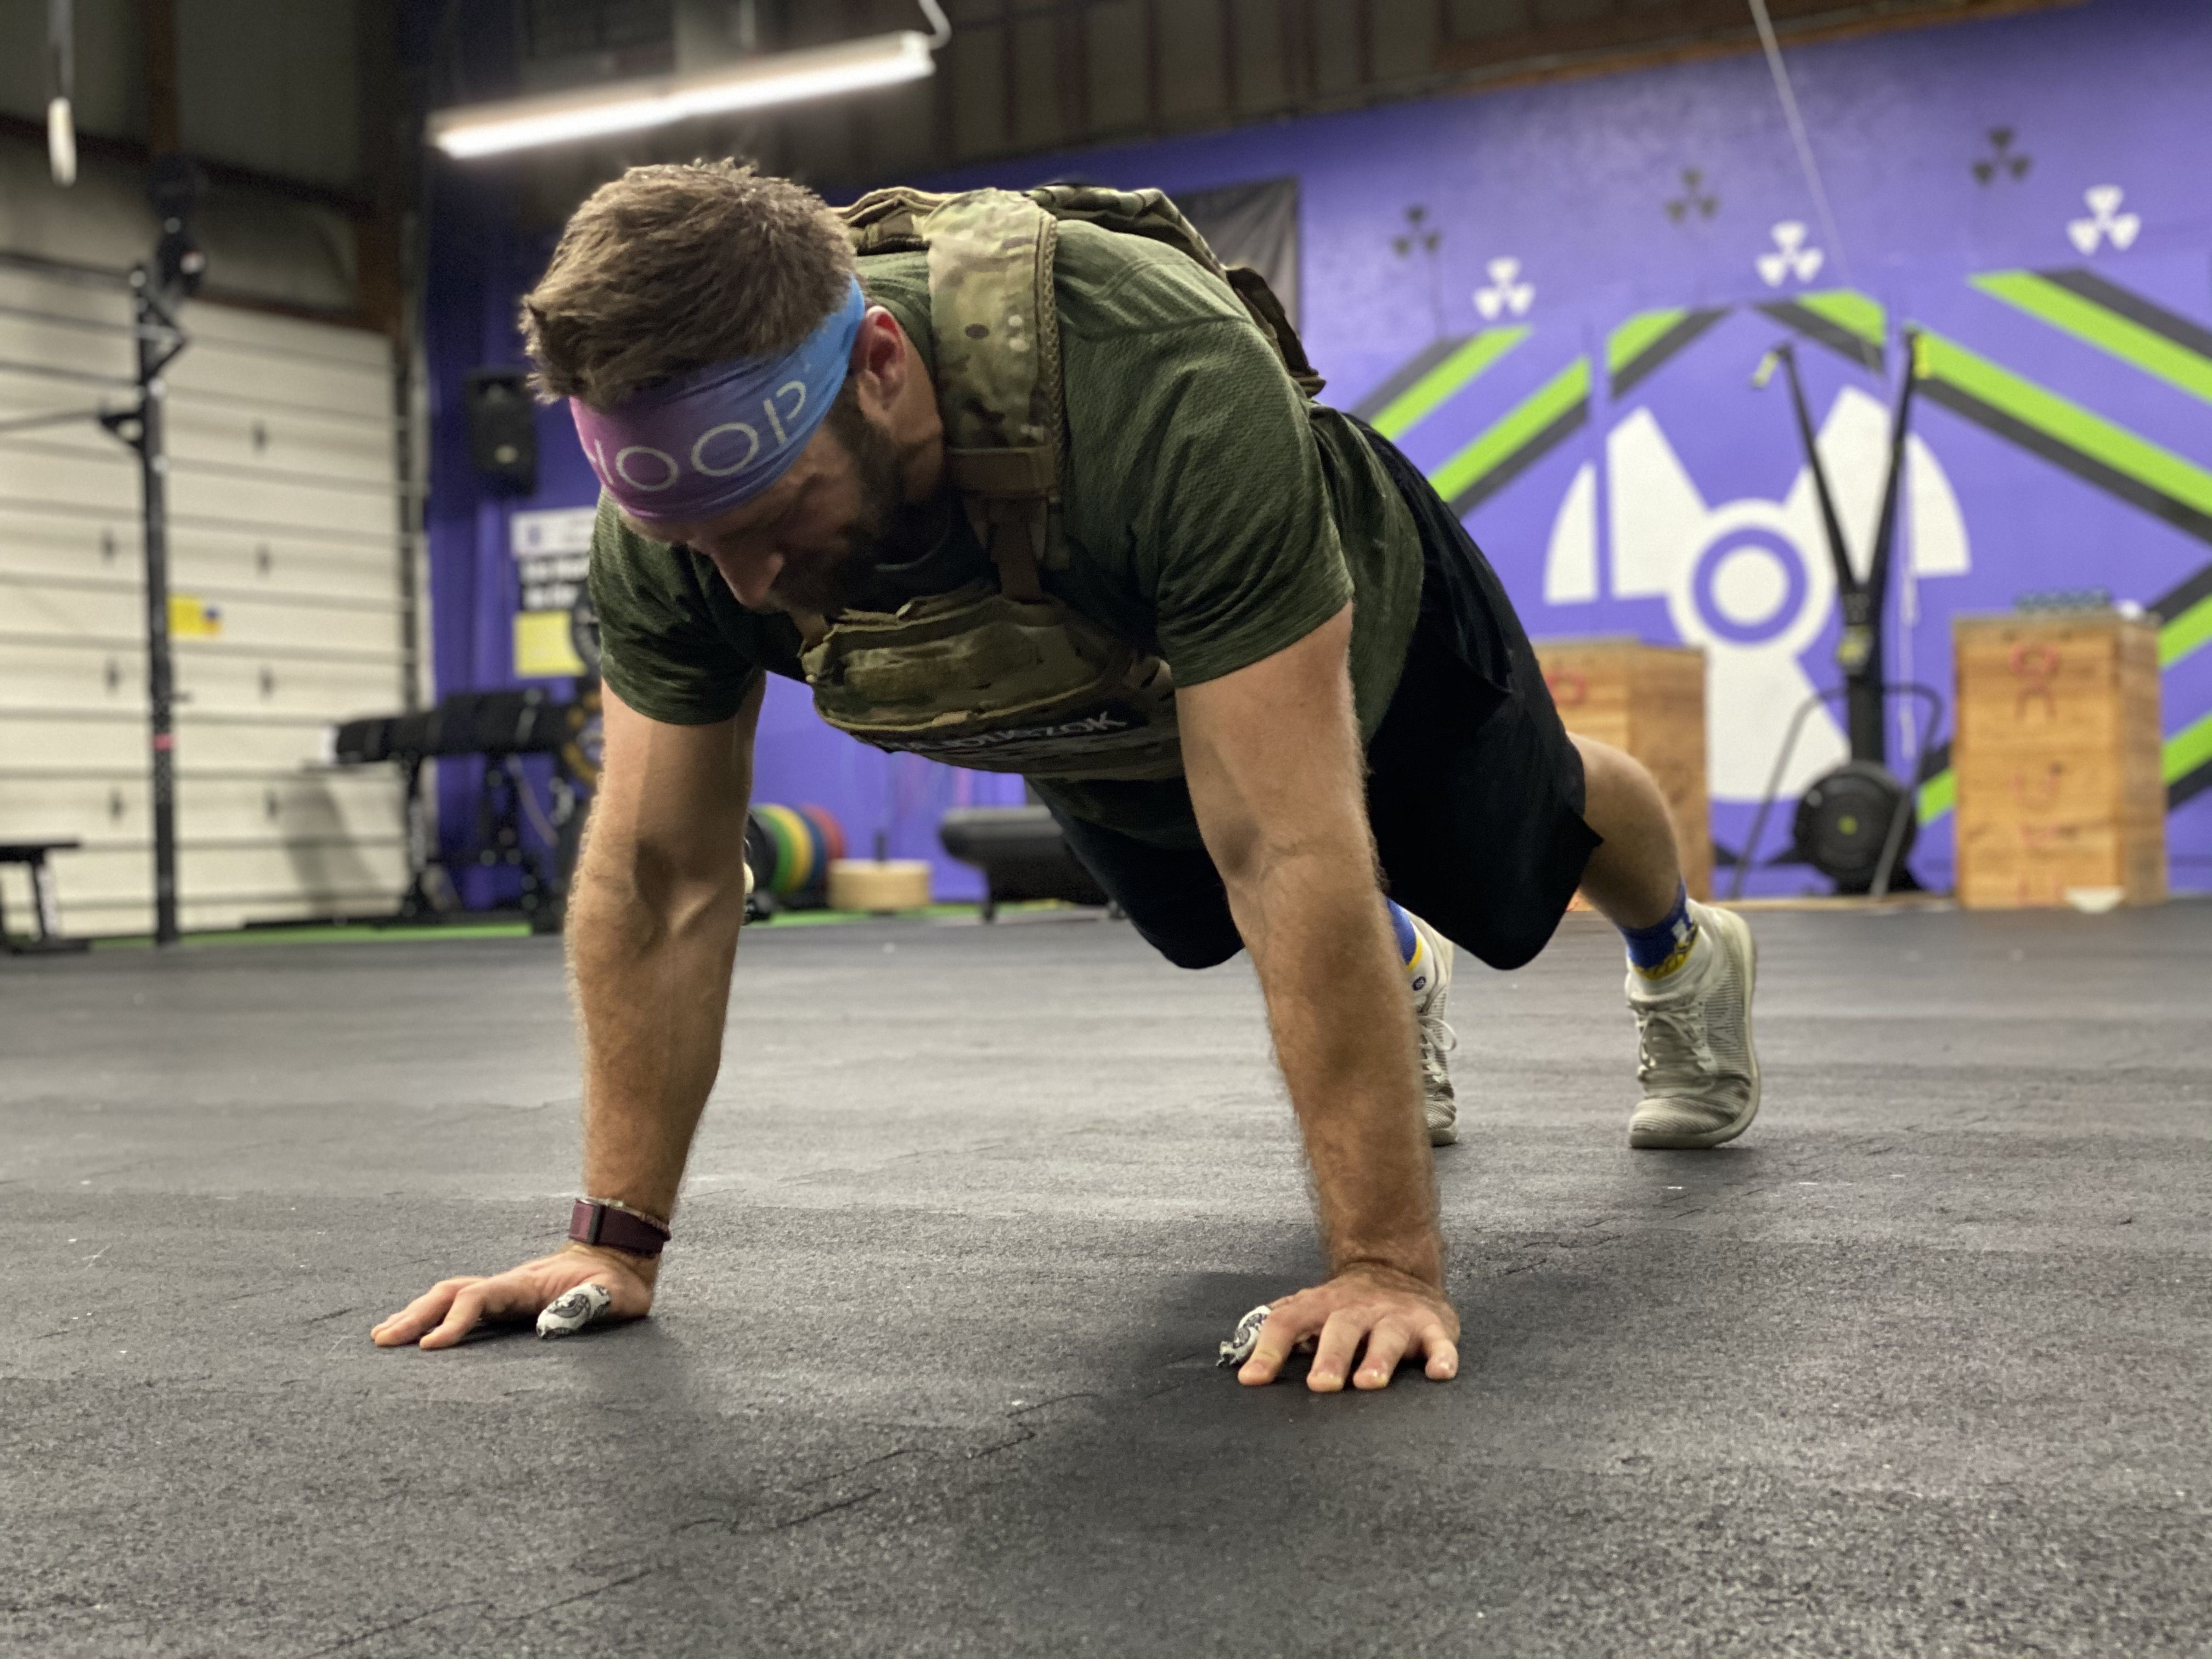 A Doctor Did 30 CrossFit Murph Workouts in 30 Days and Tracked His Heart Health